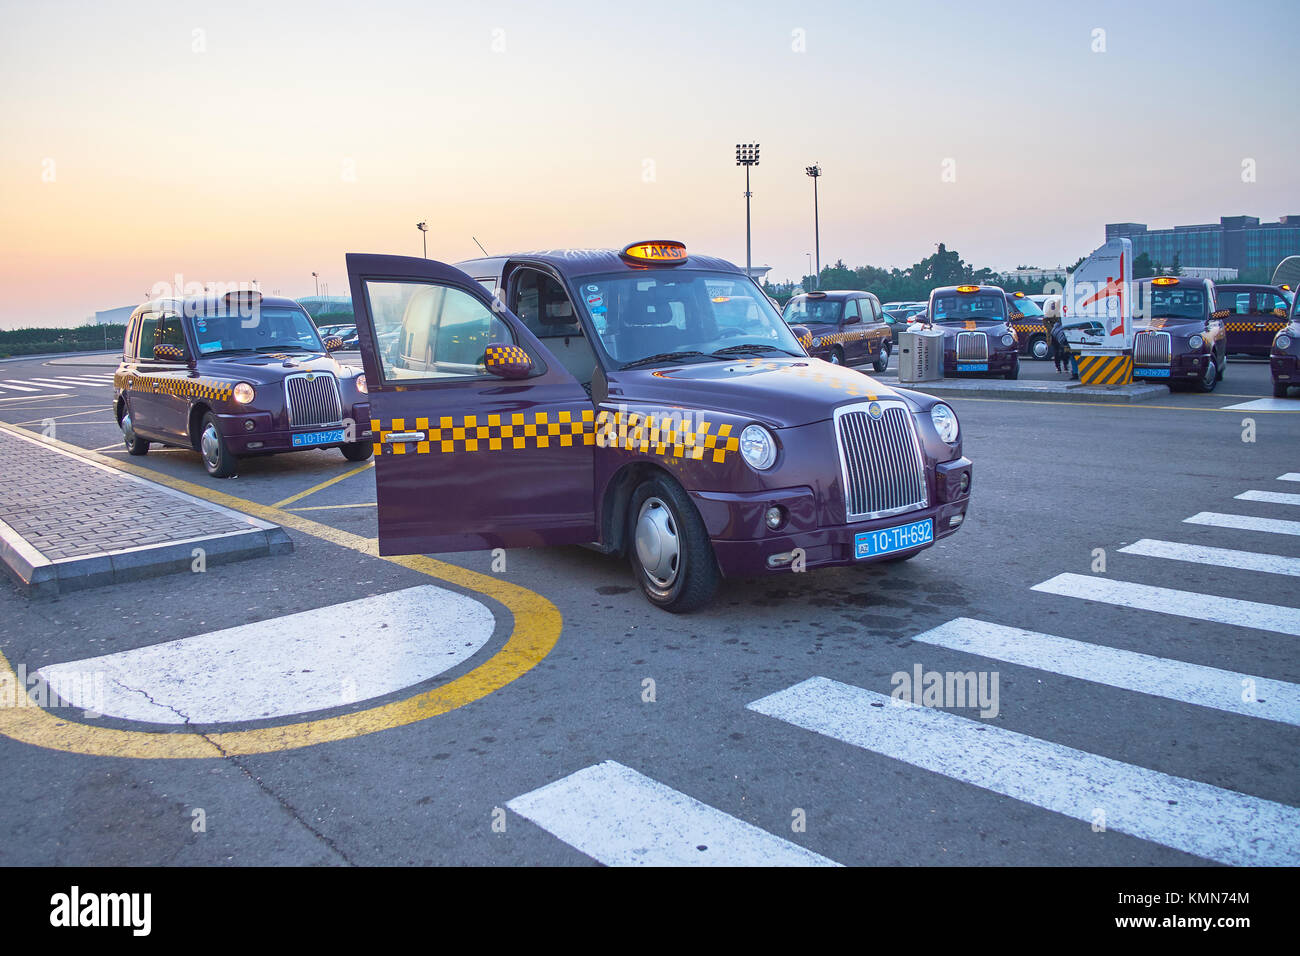 BINA, AZERBAIJAN - OCTOBER 9, 2017: Classic London cabs in Heydar Aliyev Airport are the most unexpected meet in - Stock Image